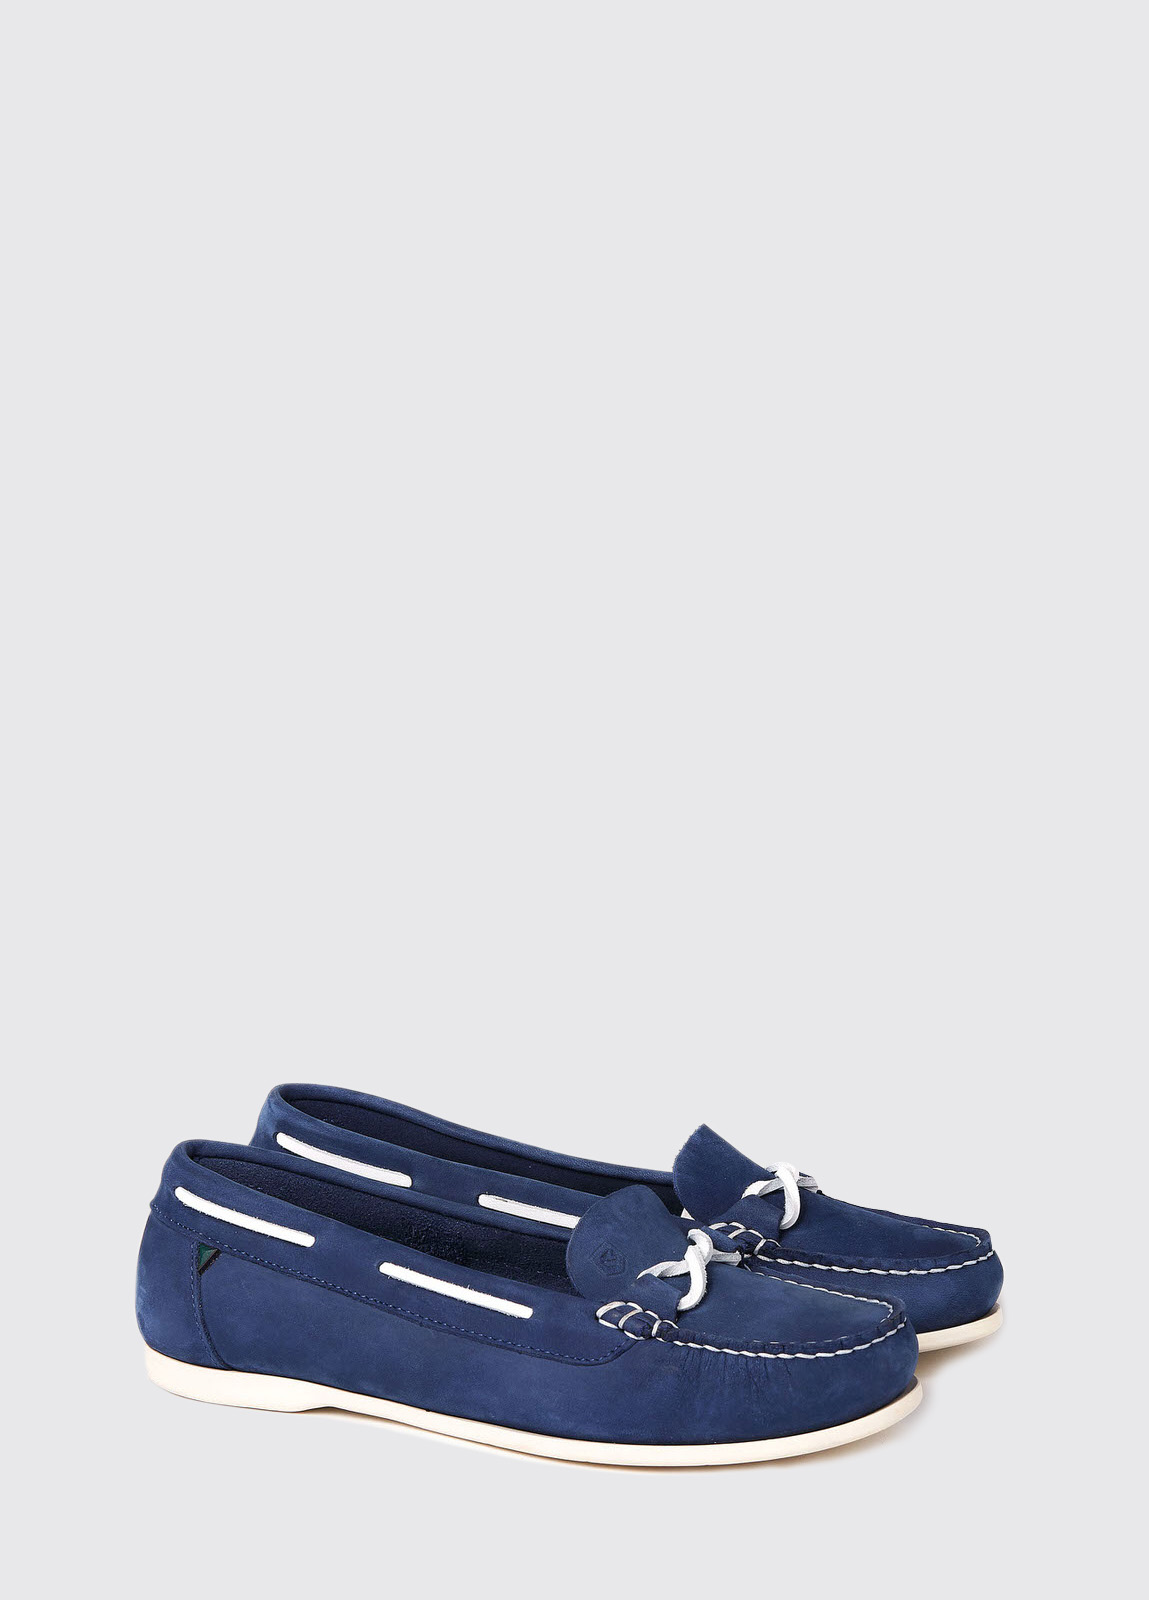 Rhodes Deck Shoe - Royal Blue